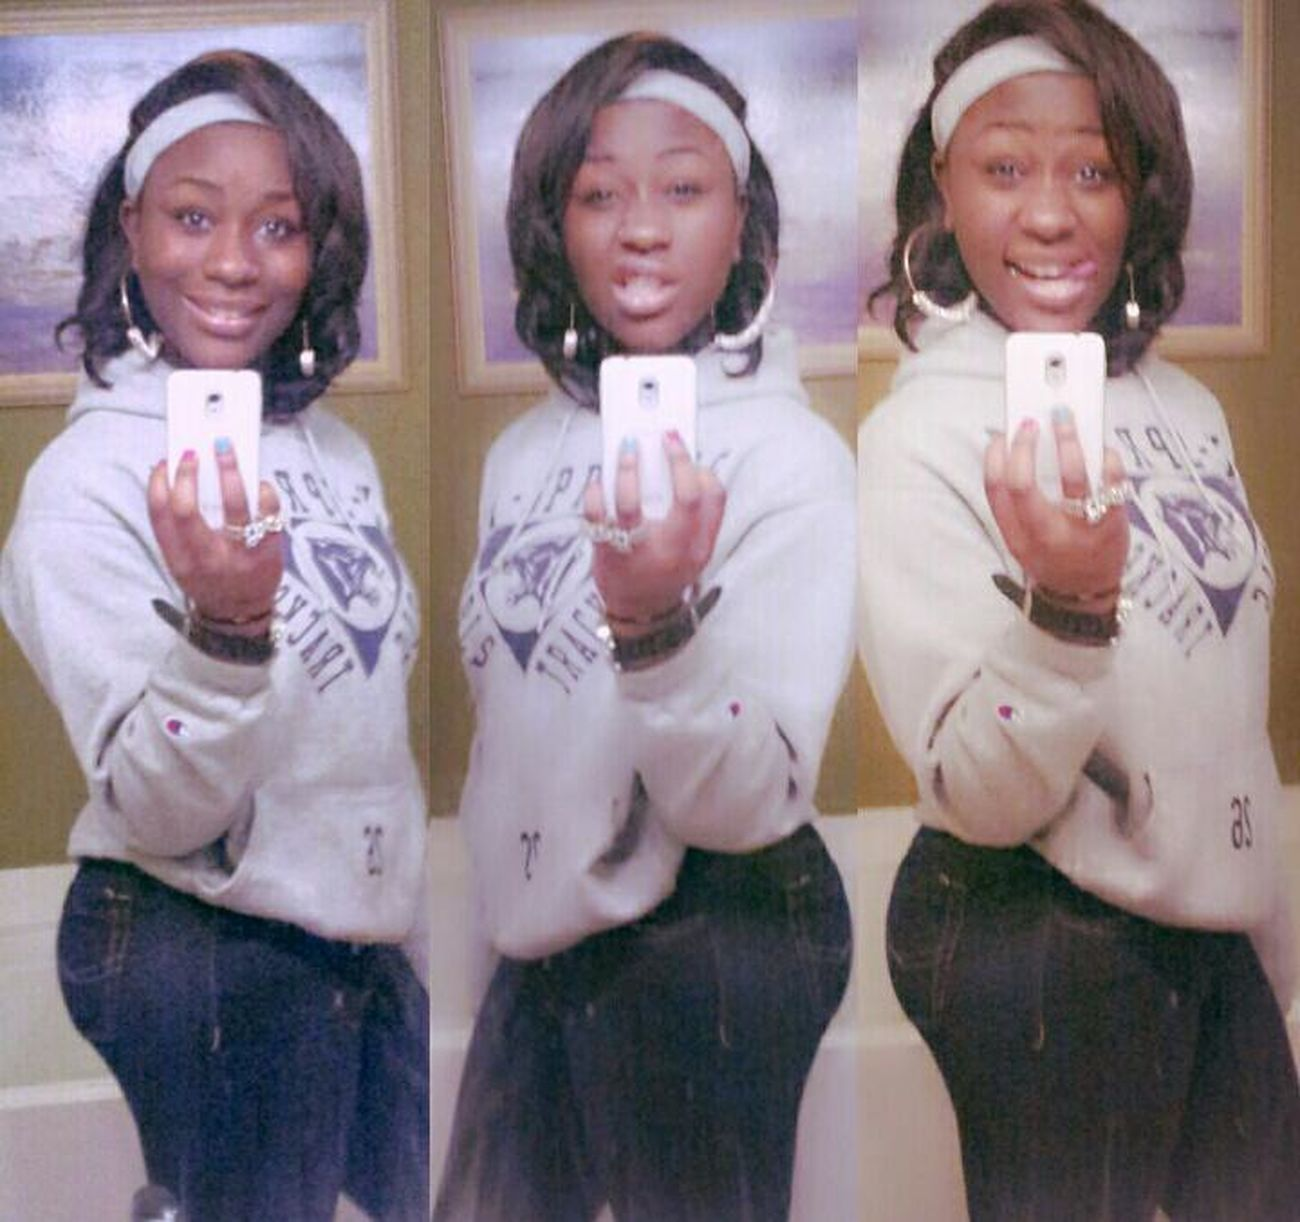 Bum day today....so don't judge, cause u not perfect lol:) IDK Cy Springs Bummmm TrackNation?